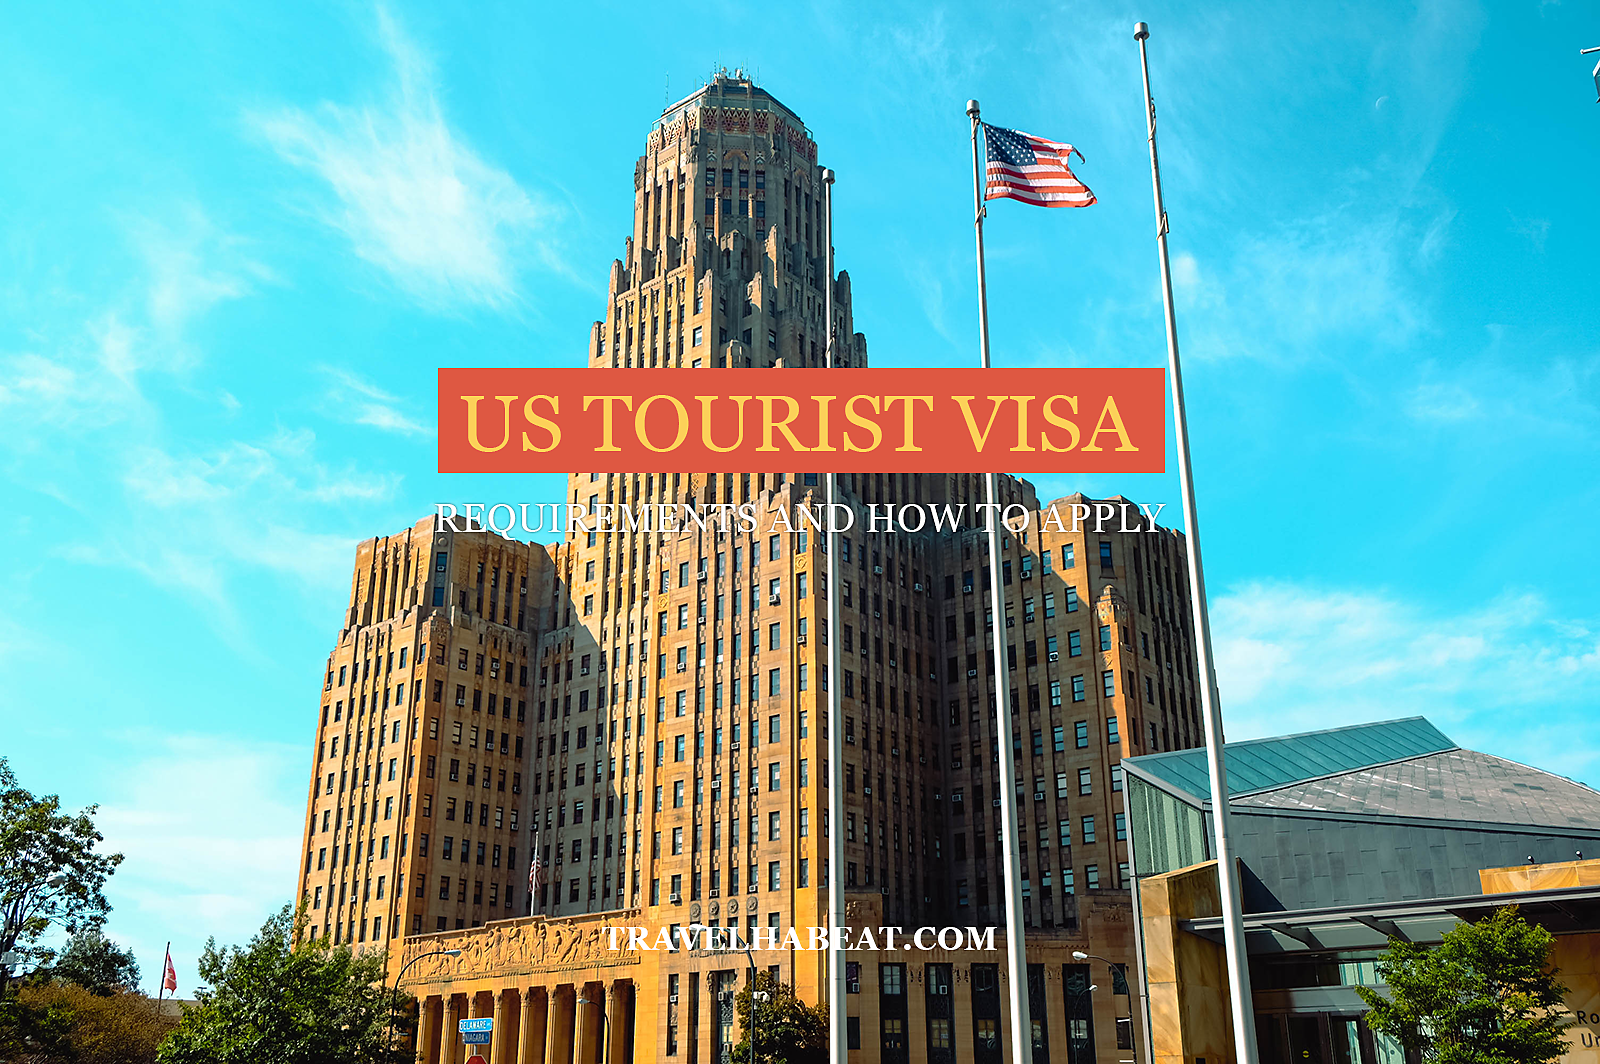 US Tourist Visa Requirements and How to Apply